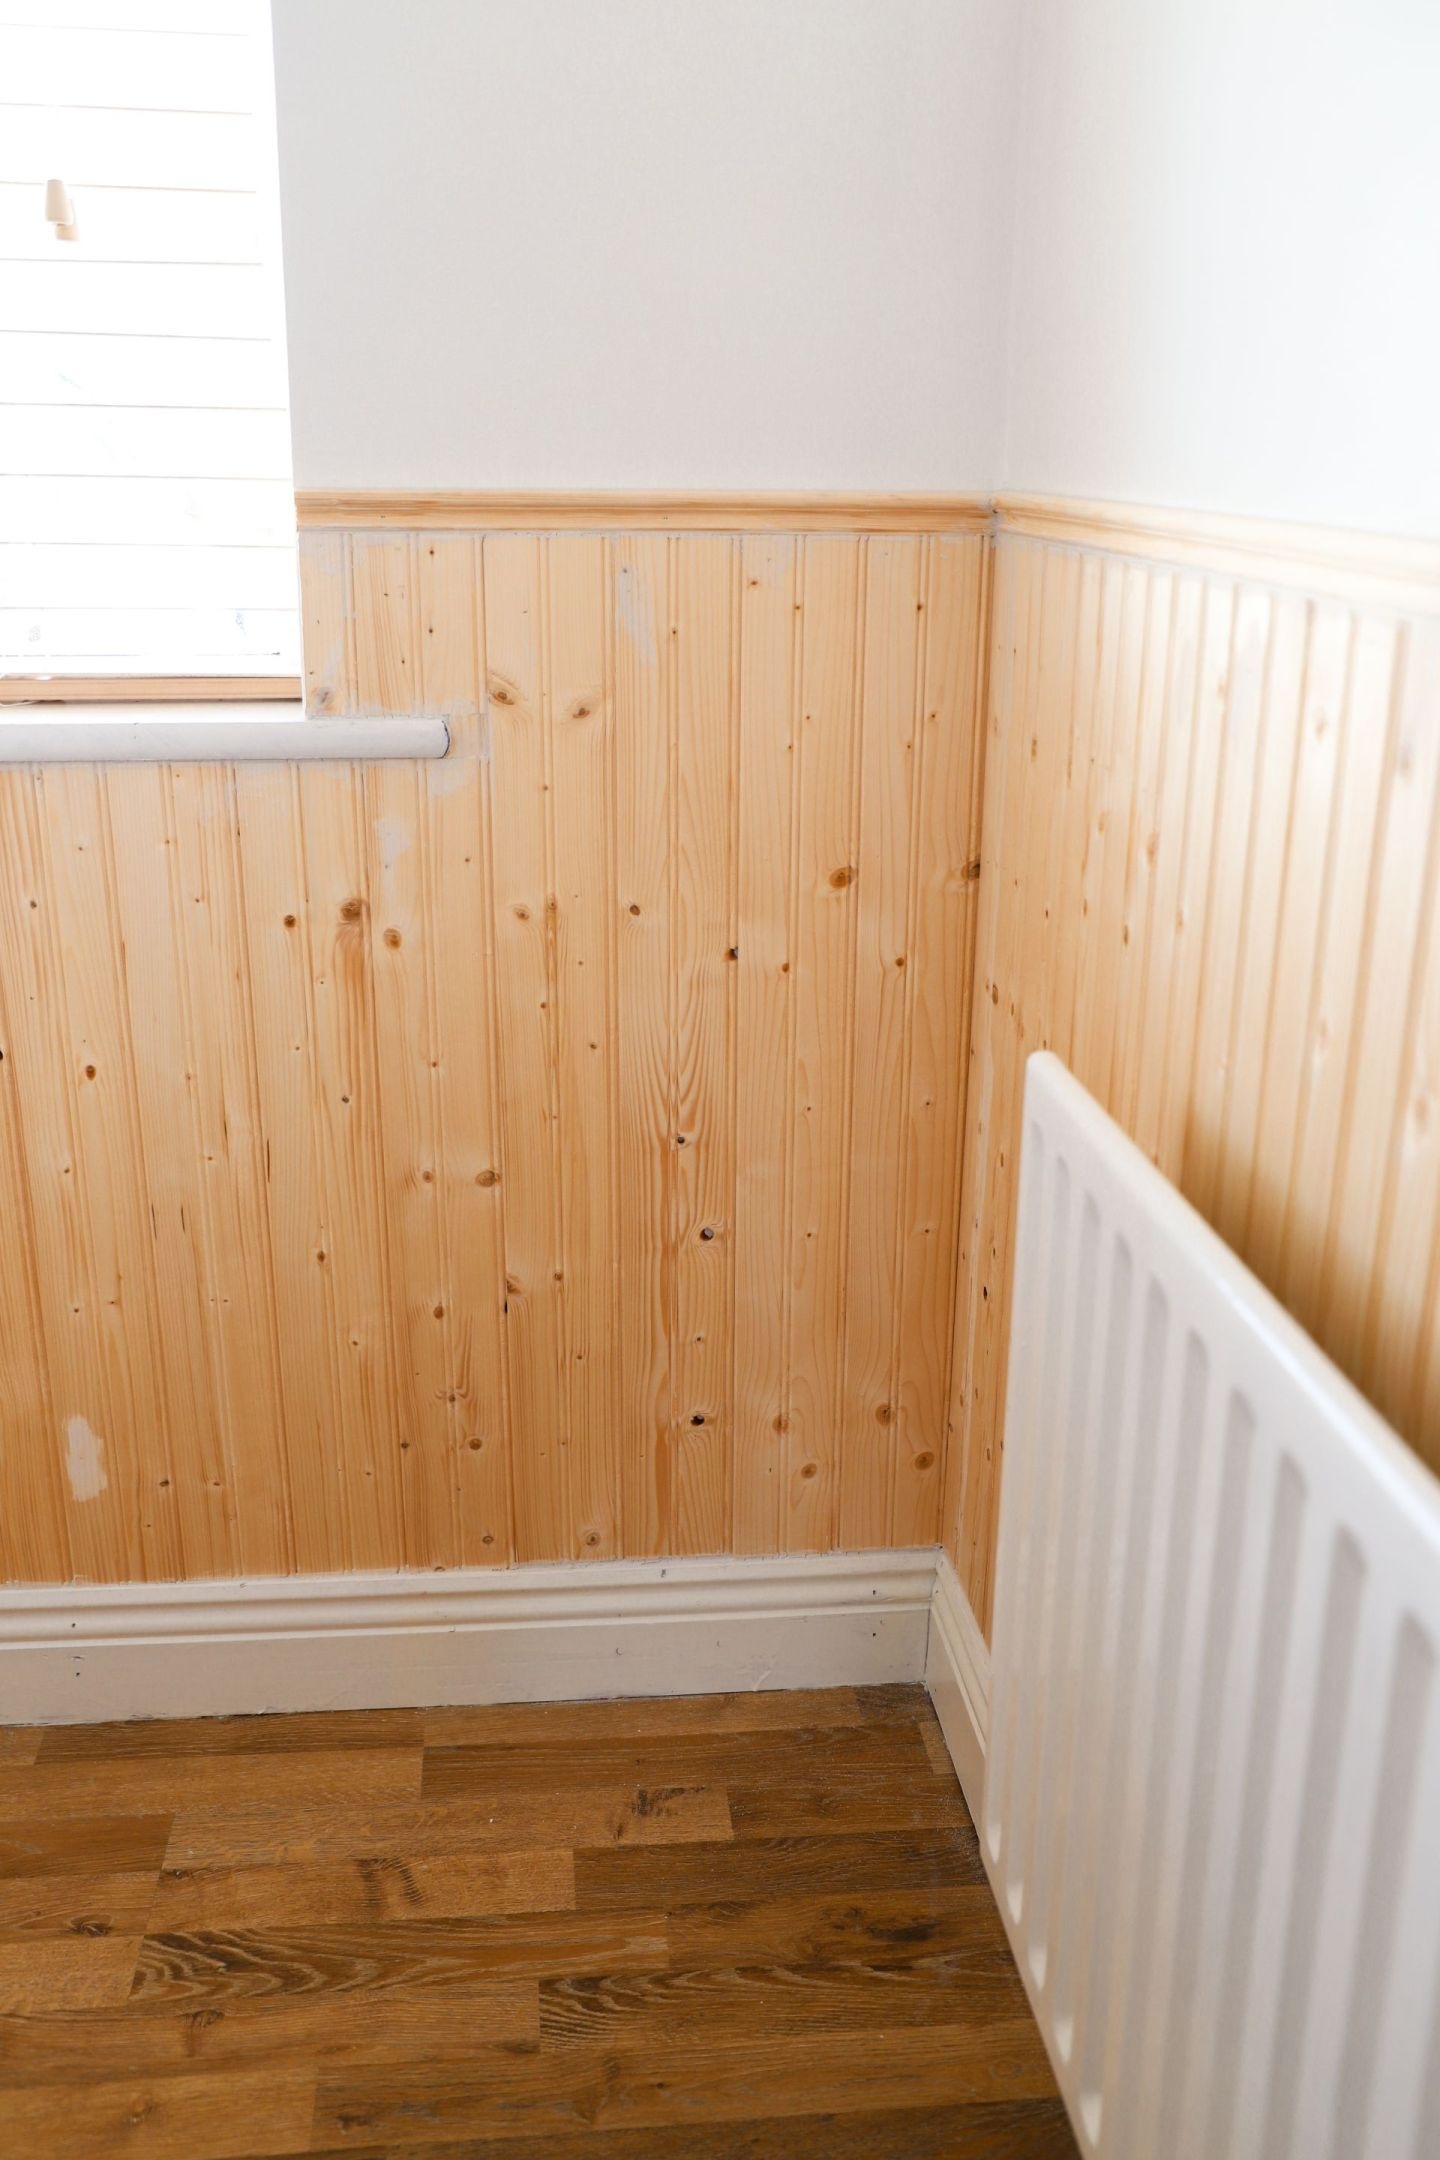 How to install beadboard panelling to a room